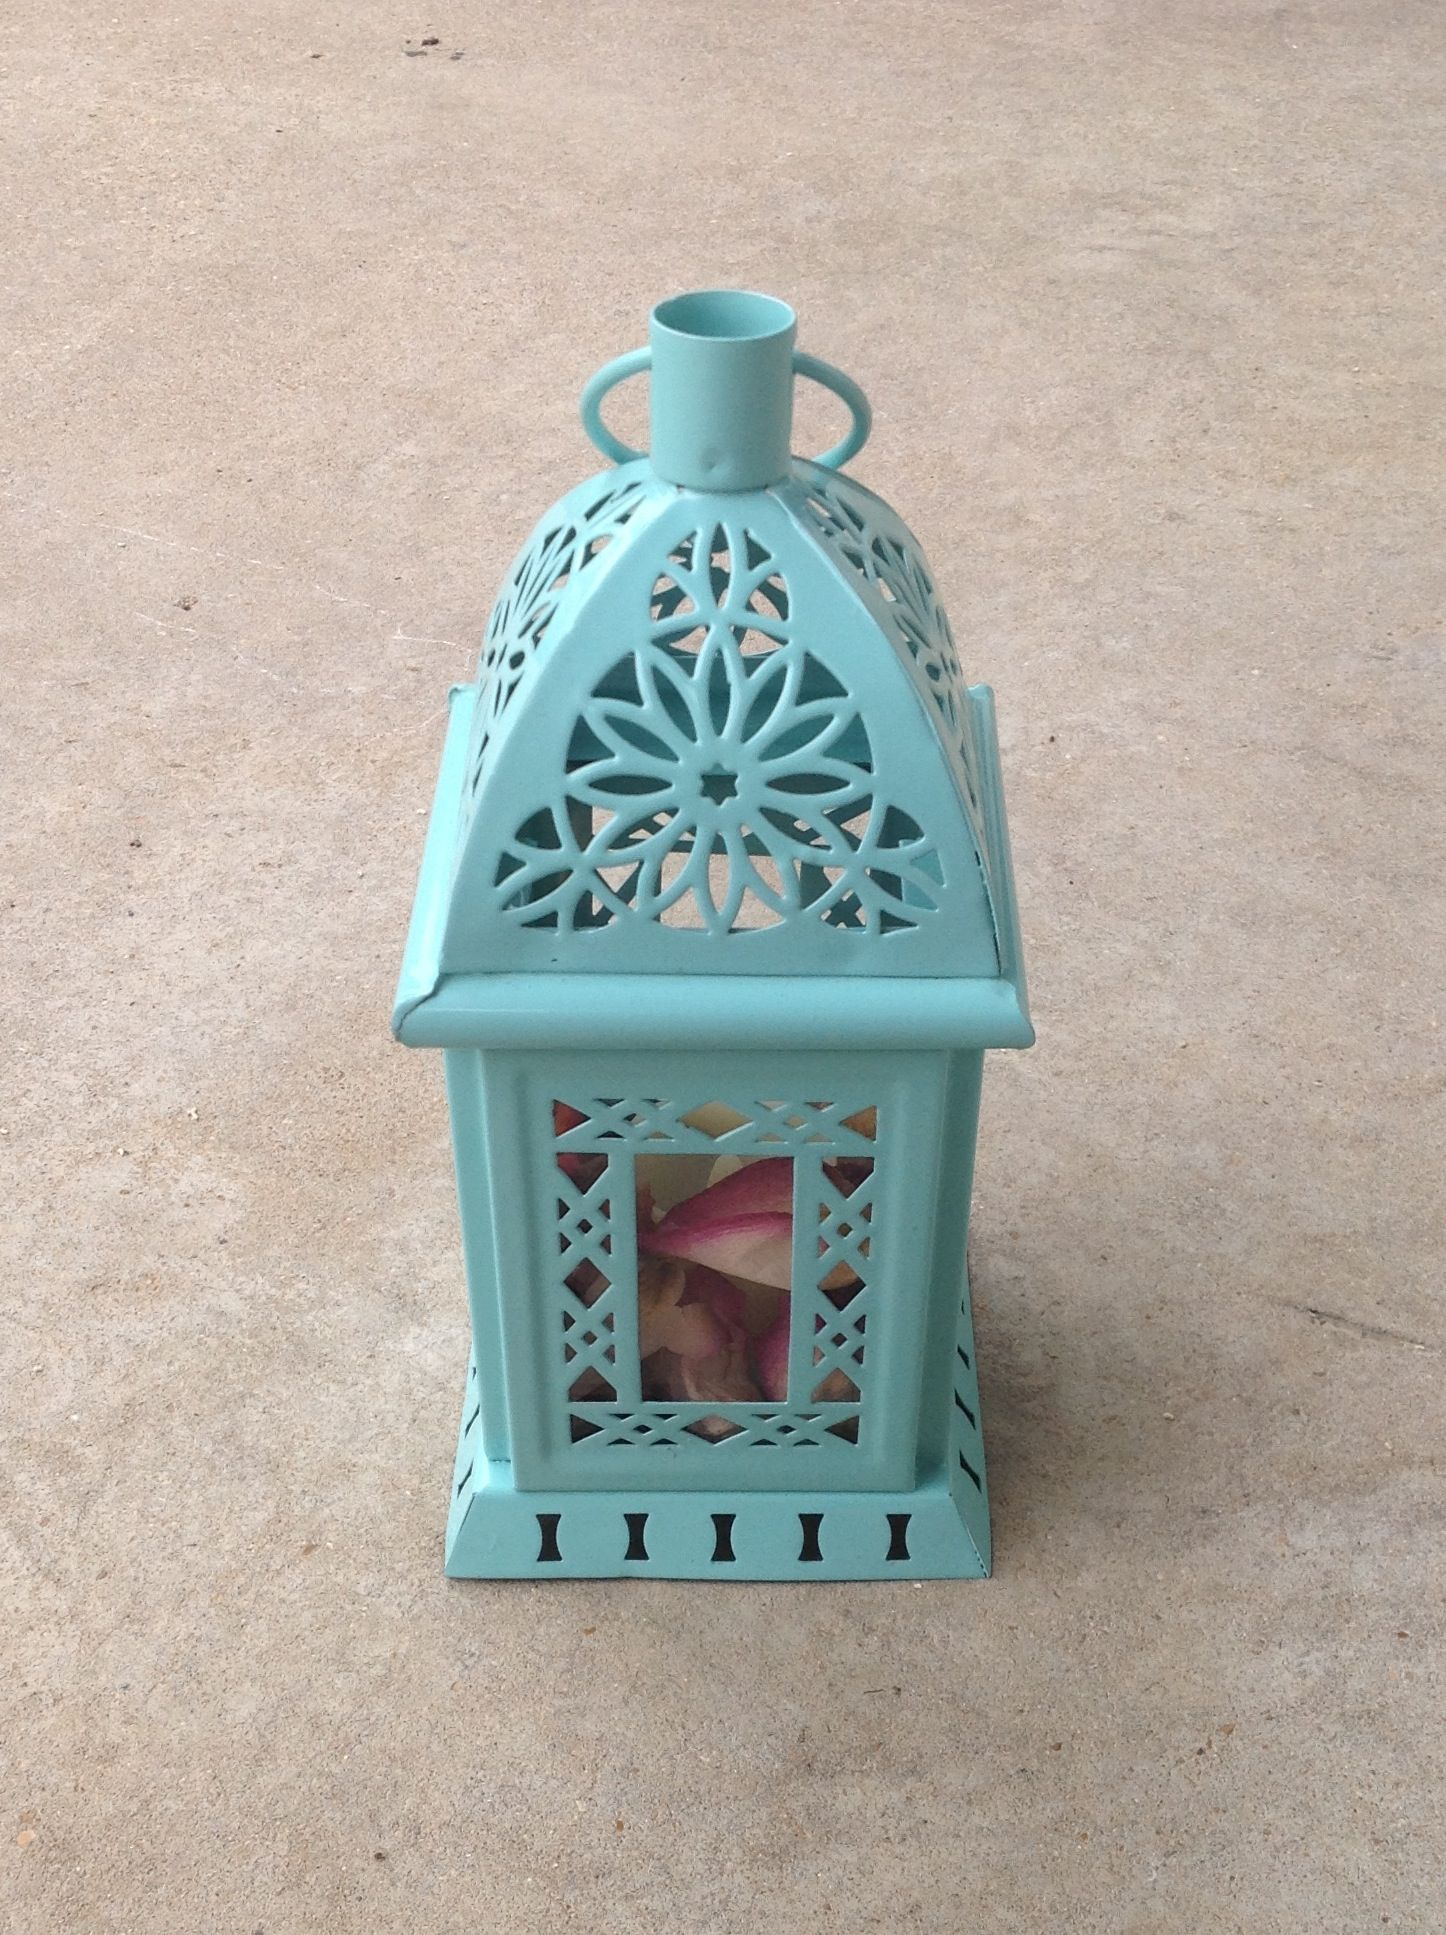 Turquoise lanterns with petals